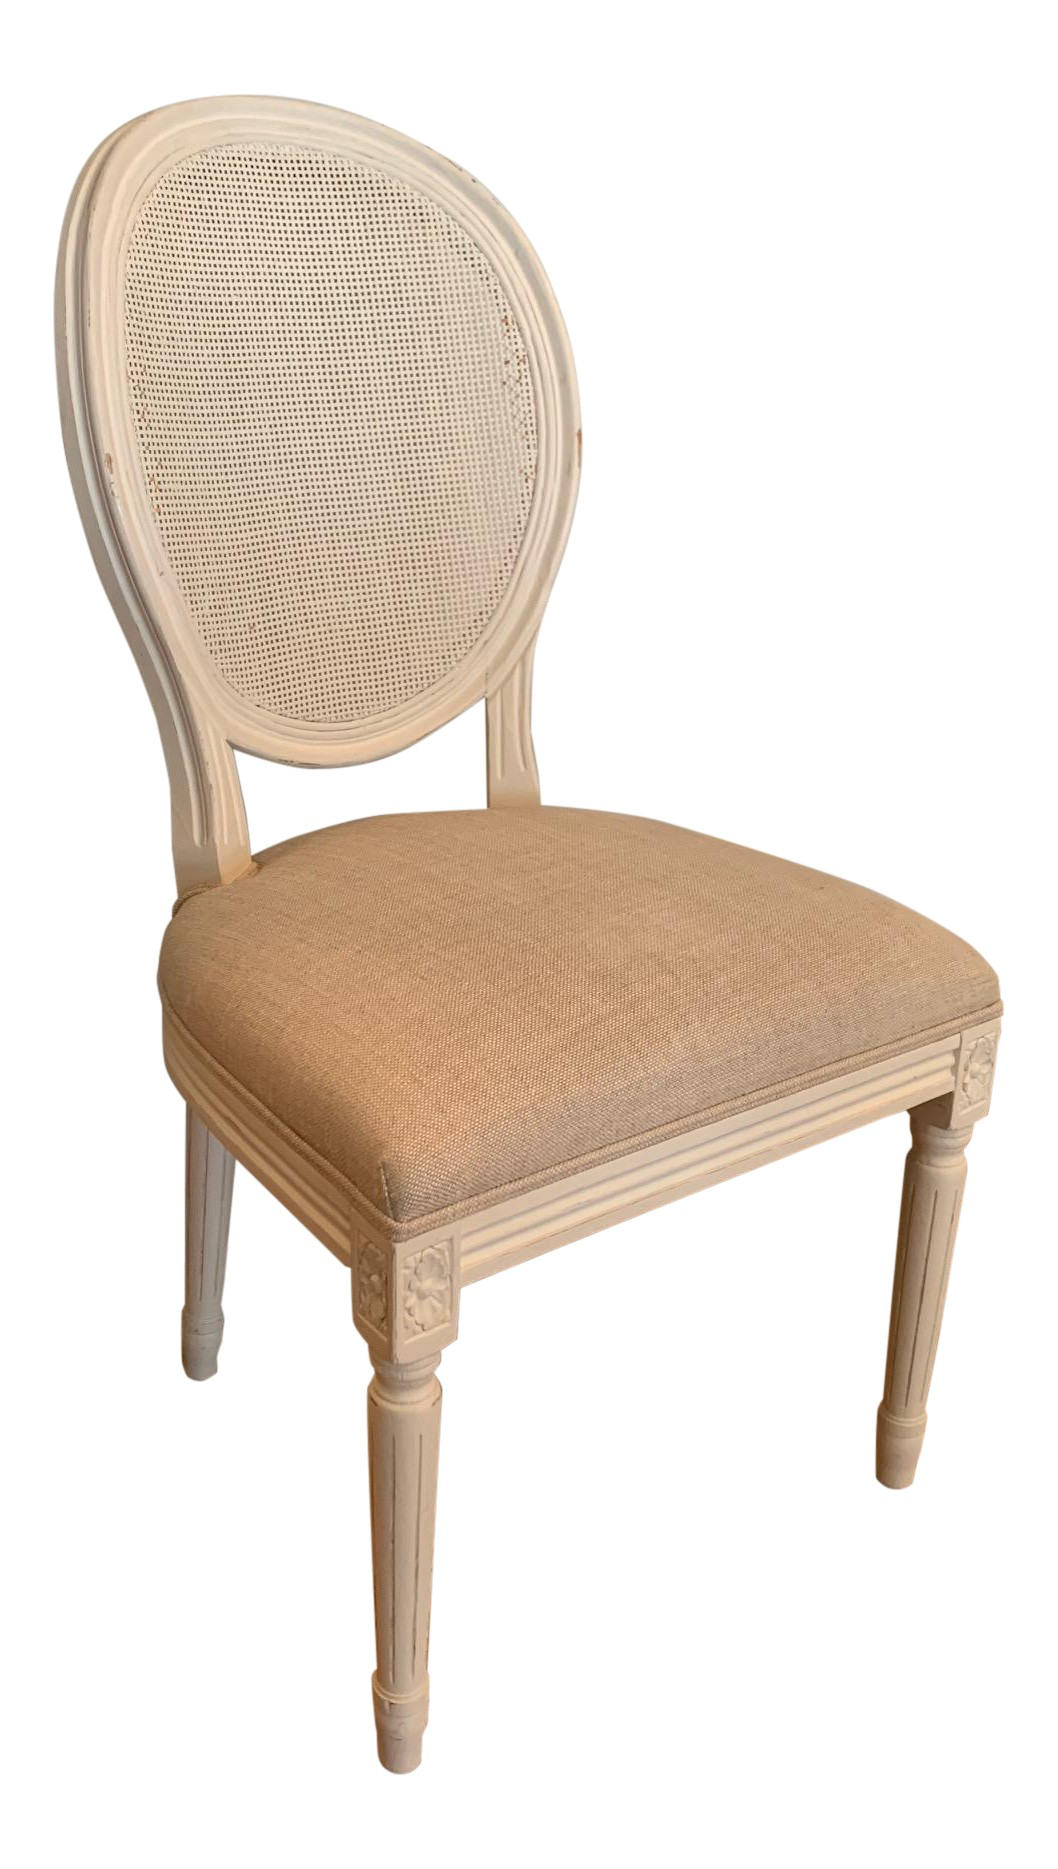 Restoration Hardware Vintage French Round Cane Back Chairs